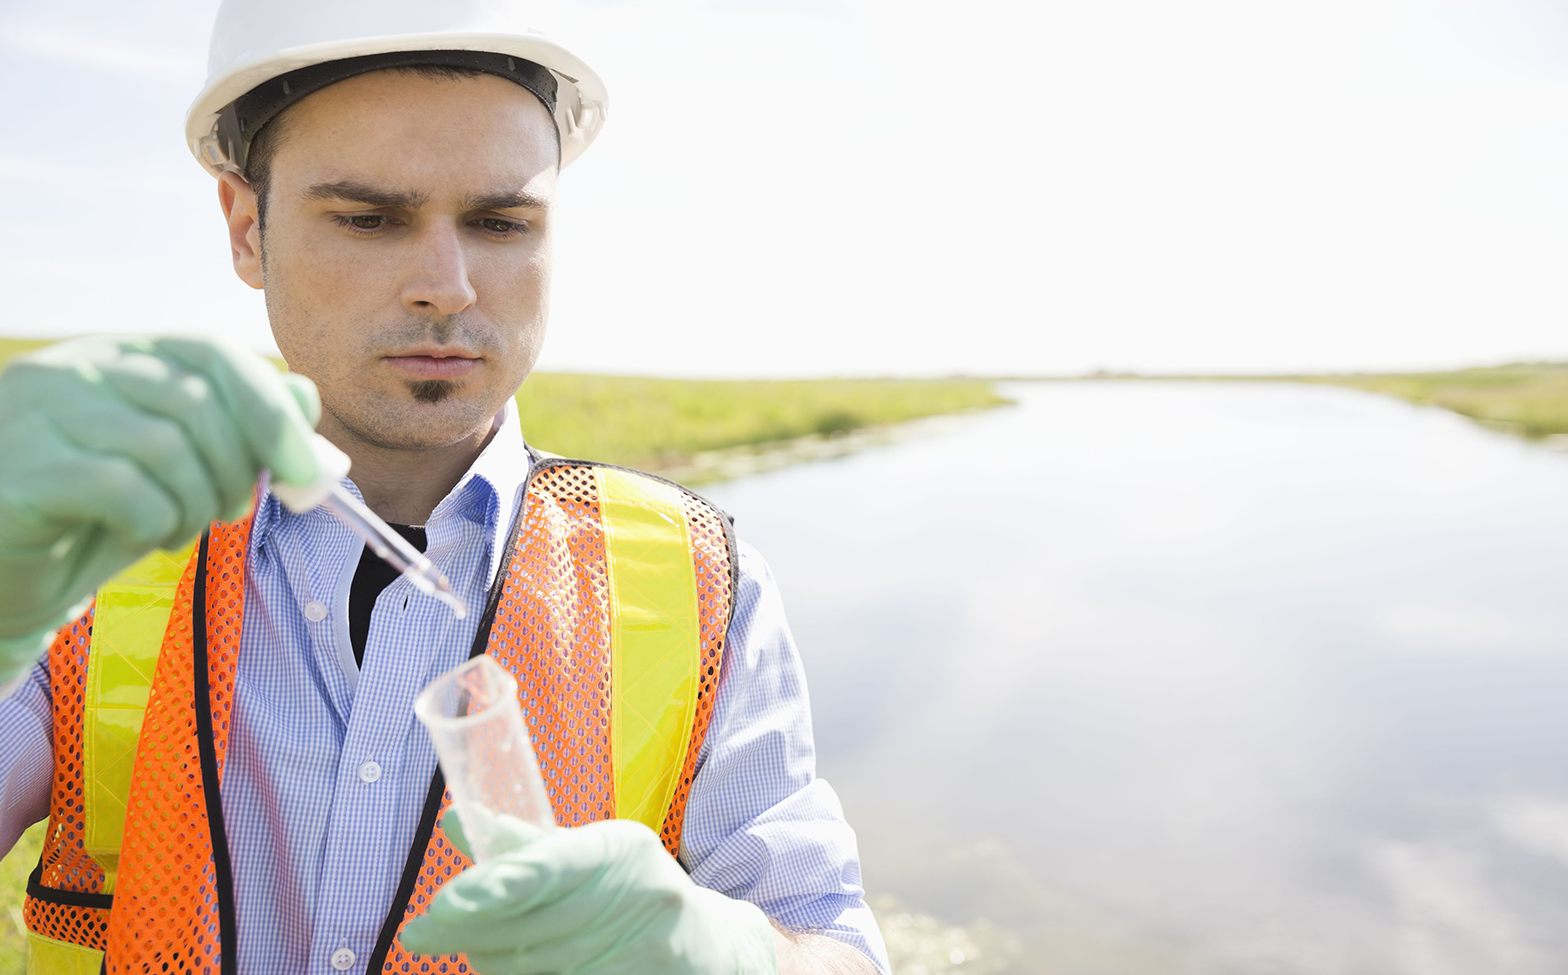 environmental, safety and health management - Smart Precise Solutions